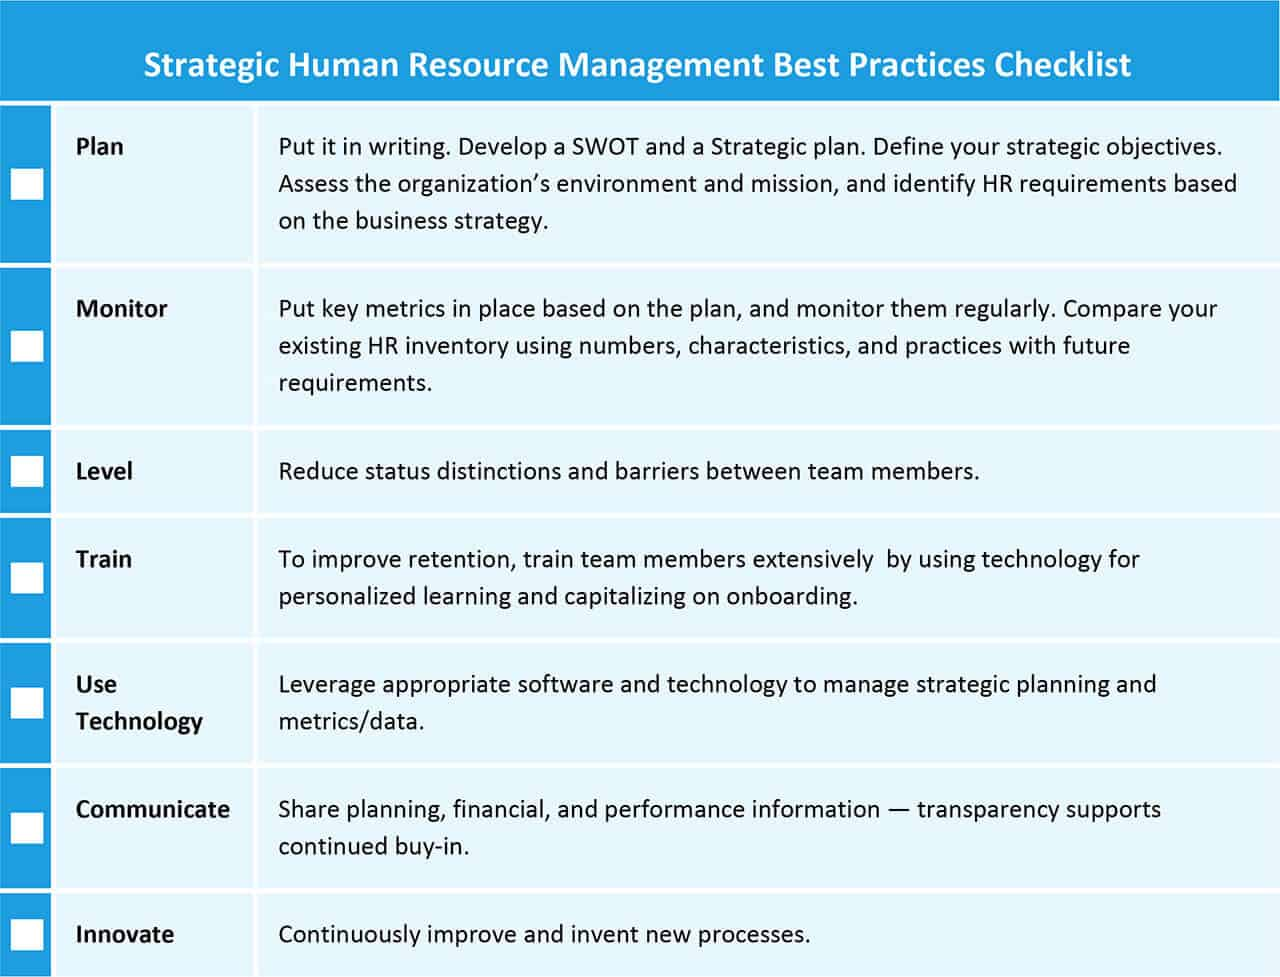 Strategic Human Resource Management | Smartsheet